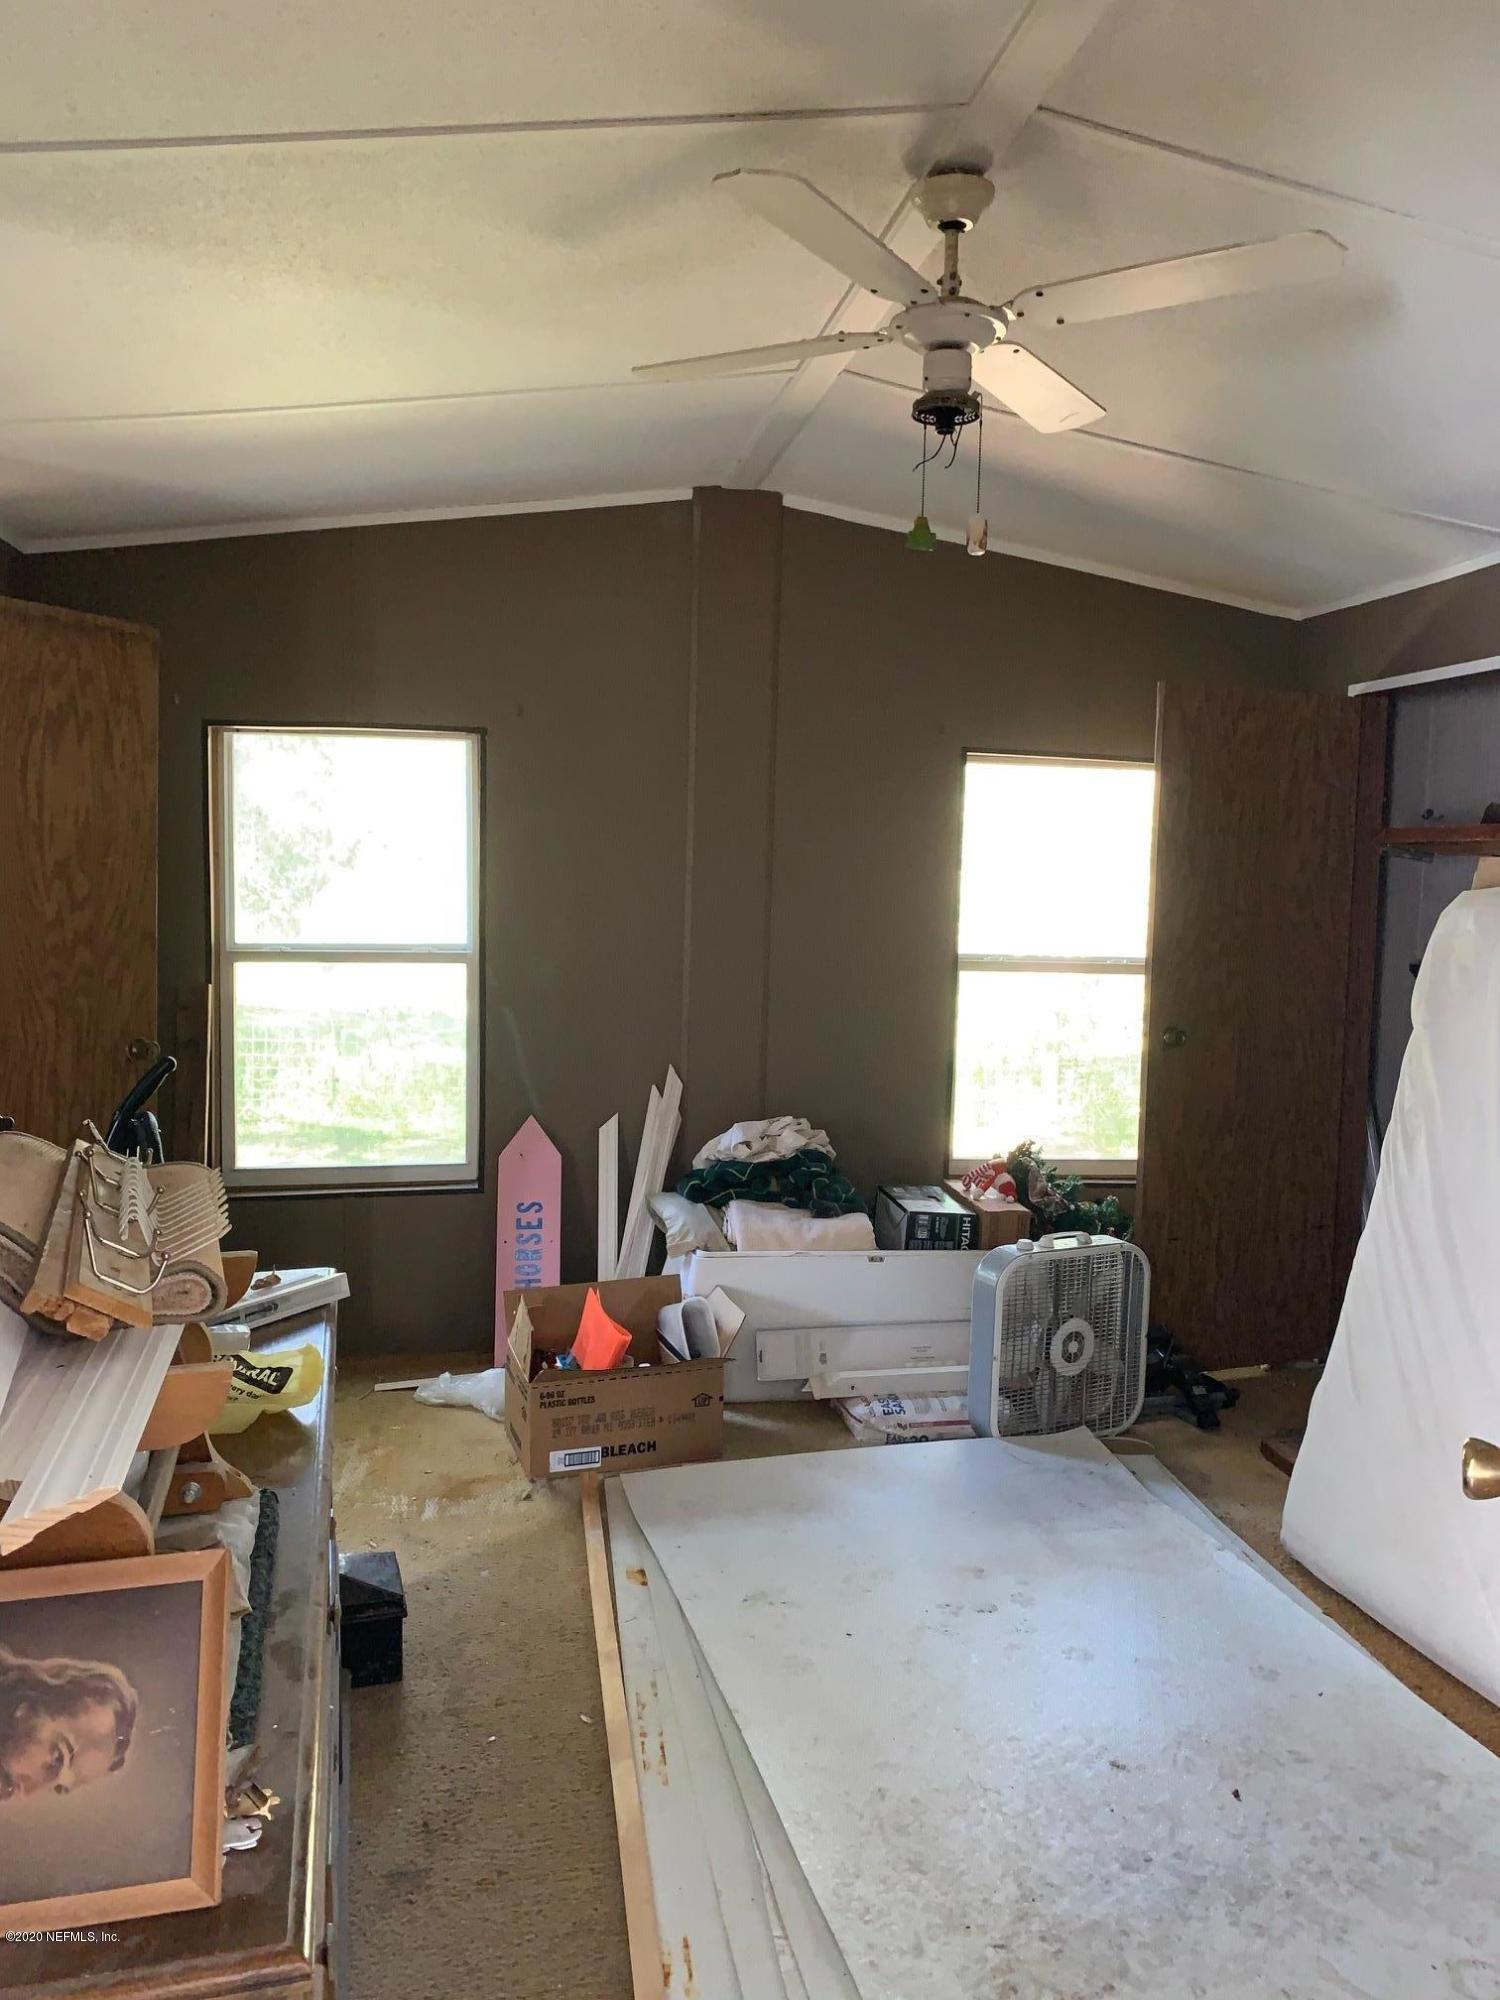 1418 CO RD 309, CRESCENT CITY, FLORIDA 32112, 3 Bedrooms Bedrooms, ,2 BathroomsBathrooms,Residential,For sale,CO RD 309,1080330